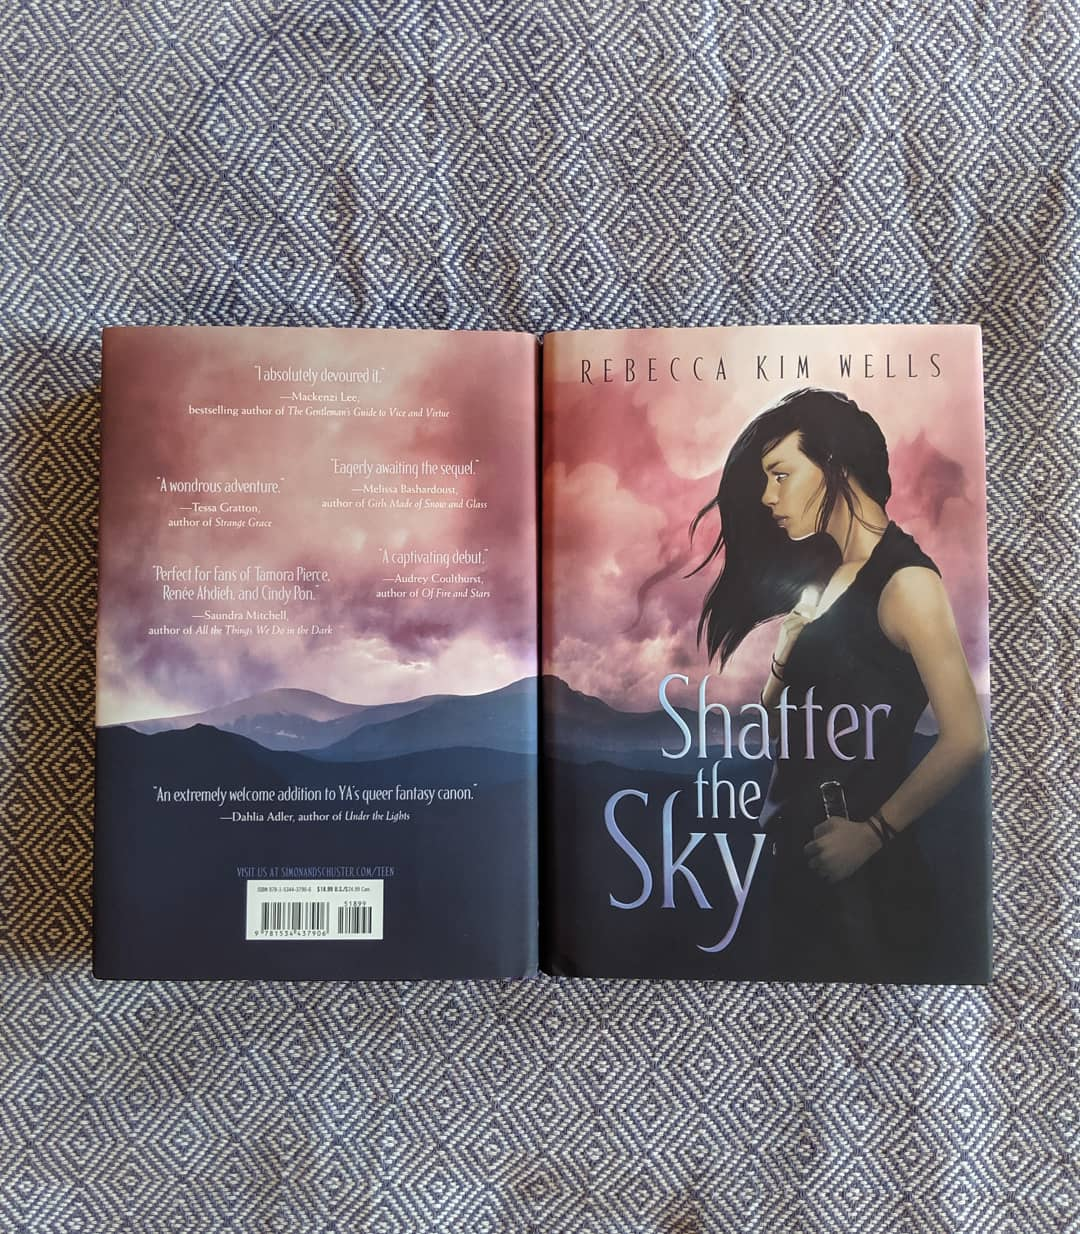 Two finished copies of SHATTER THE SKY, displayed over a blue and white fabric.